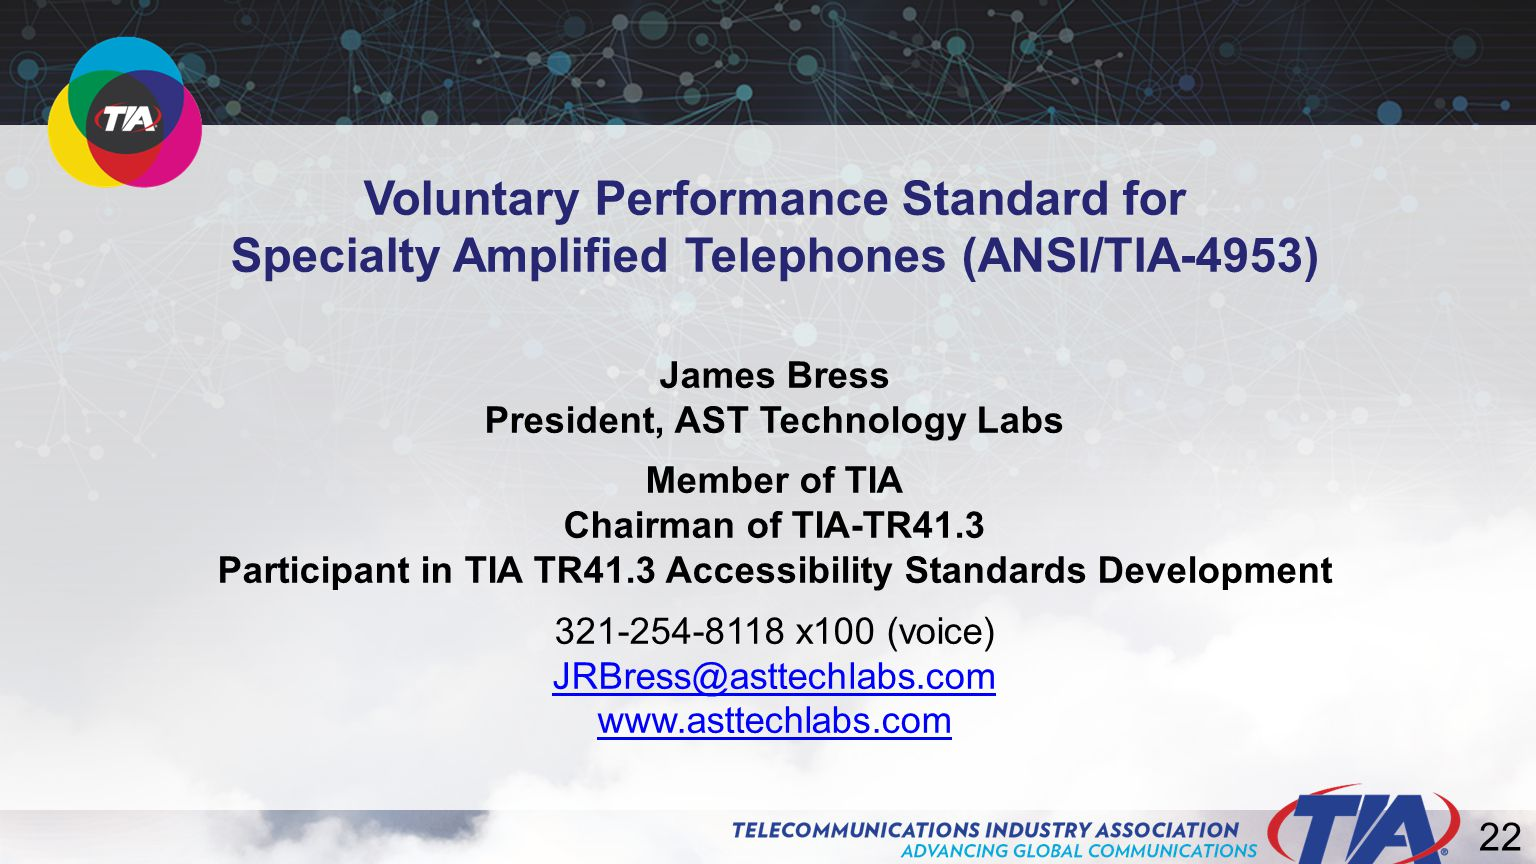 22 Voluntary Performance Standard for Specialty Amplified Telephones (ANSI/TIA-4953) James Bress President, AST Technology Labs Member of TIA Chairman of TIA-TR41.3 Participant in TIA TR41.3 Accessibility Standards Development 321-254-8118 x100 (voice) JRBress@asttechlabs.com www.asttechlabs.com